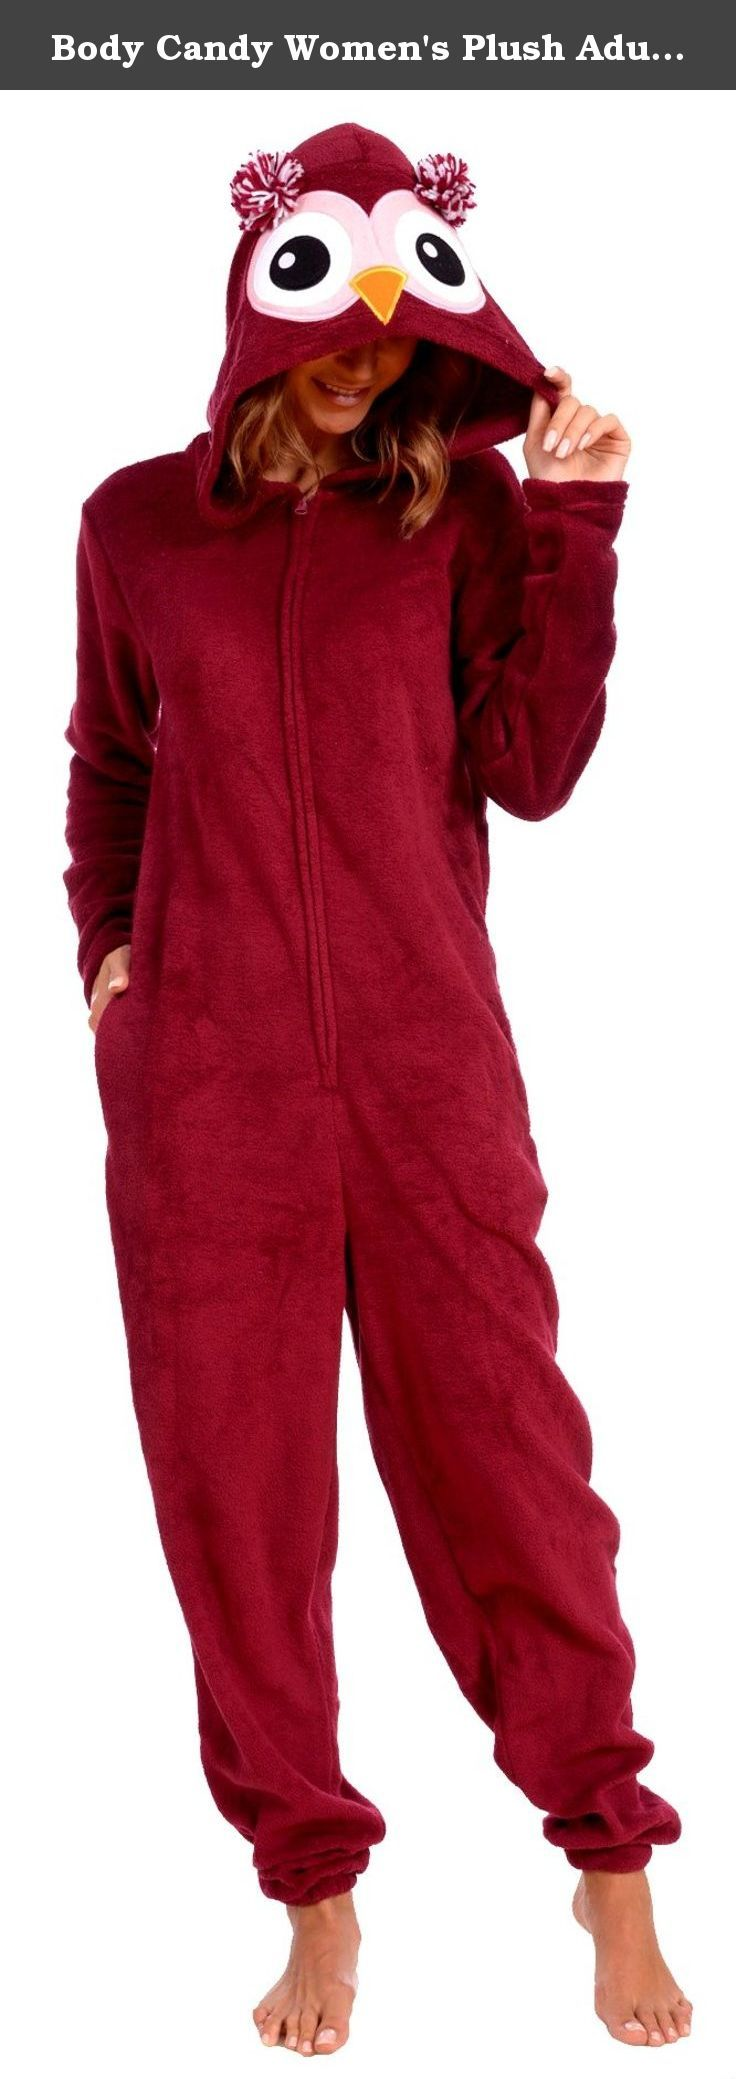 """Body Candy Women's Plush Adult Animal Hood Onesie Pajama (Owl, Small). Your winter wardrobe isn't complete without this cozy women's huggable plush onesie by Body Candy Loungewear. With an ultra soft and cozy fit, this plush adult onesie will keep you warm on the coldest of days. Front-zip hooded pajama jumpsuit comes in adorable colors that will brighten up your day! Choose from a variety of fun playful styles and prints. Click """"Body Candy Loungewear"""" to view our entire collection of..."""